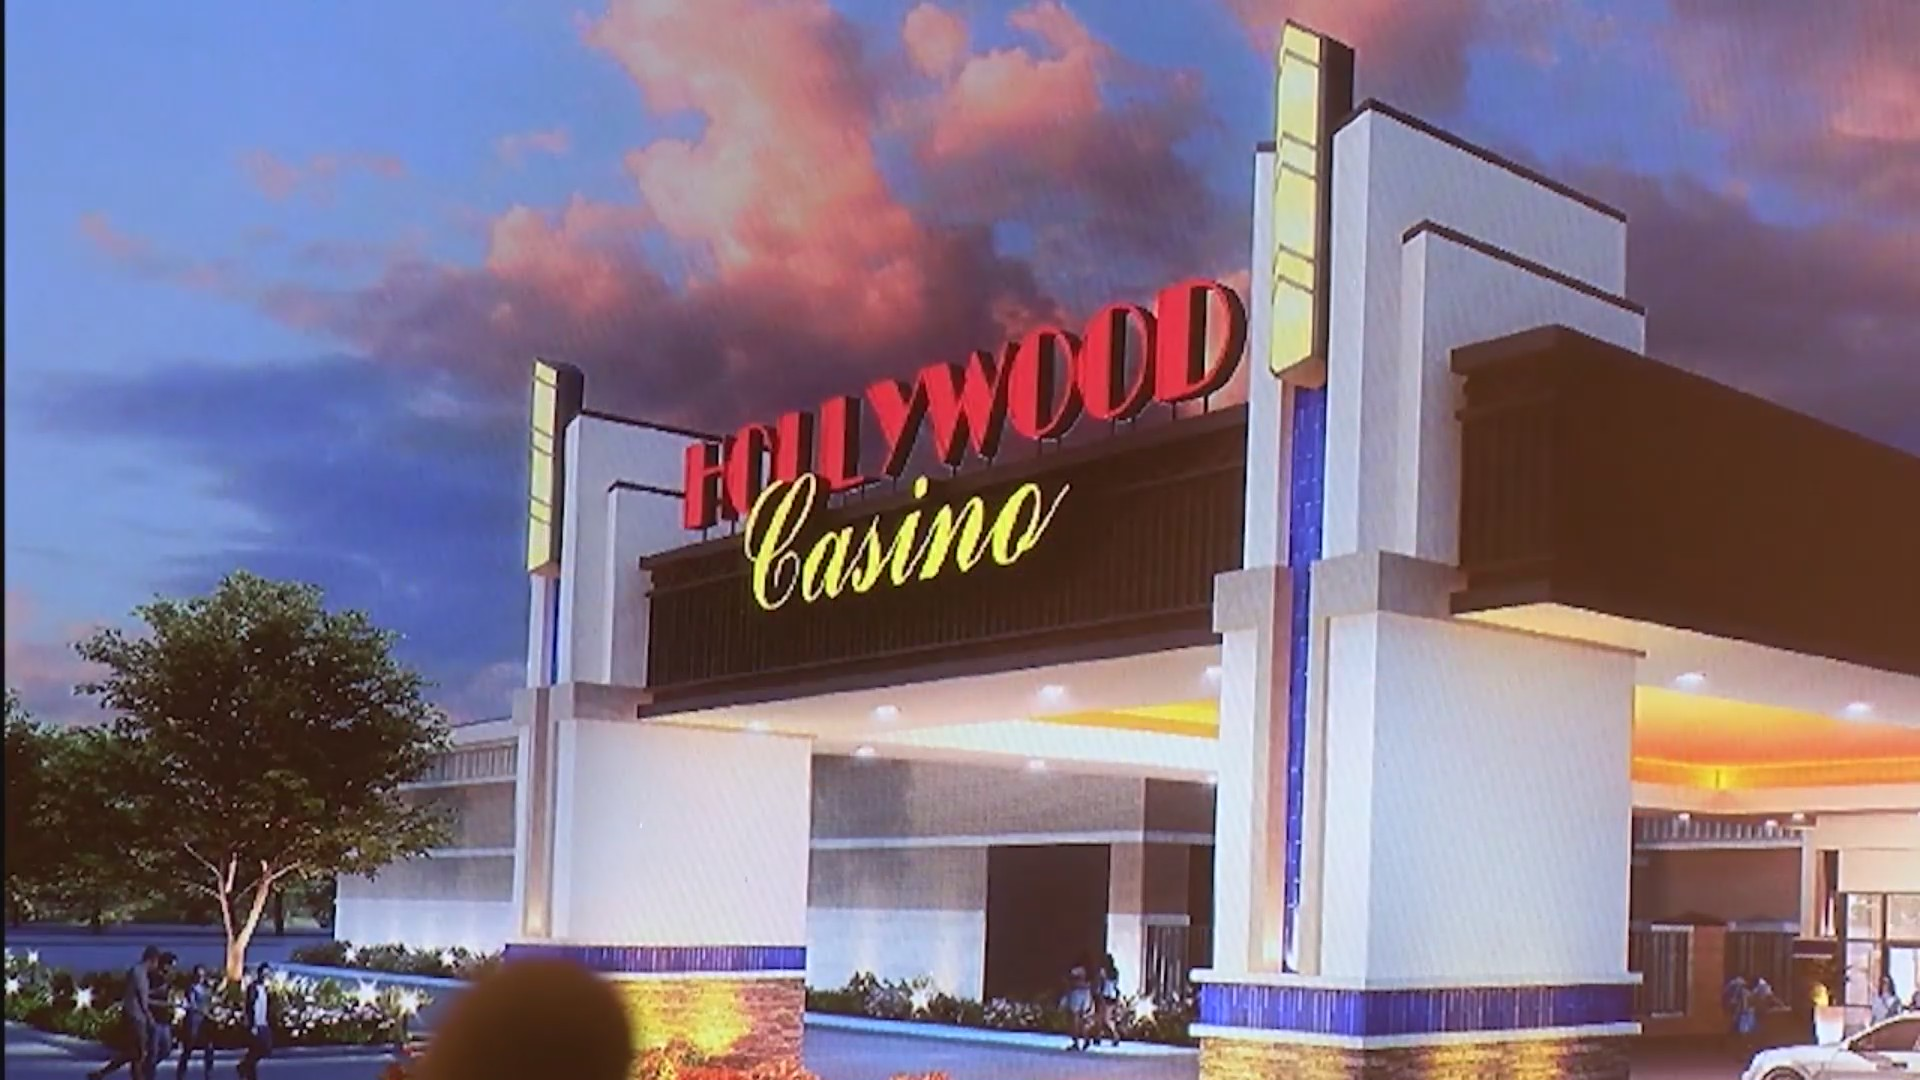 York mini-casino one step closer to reality